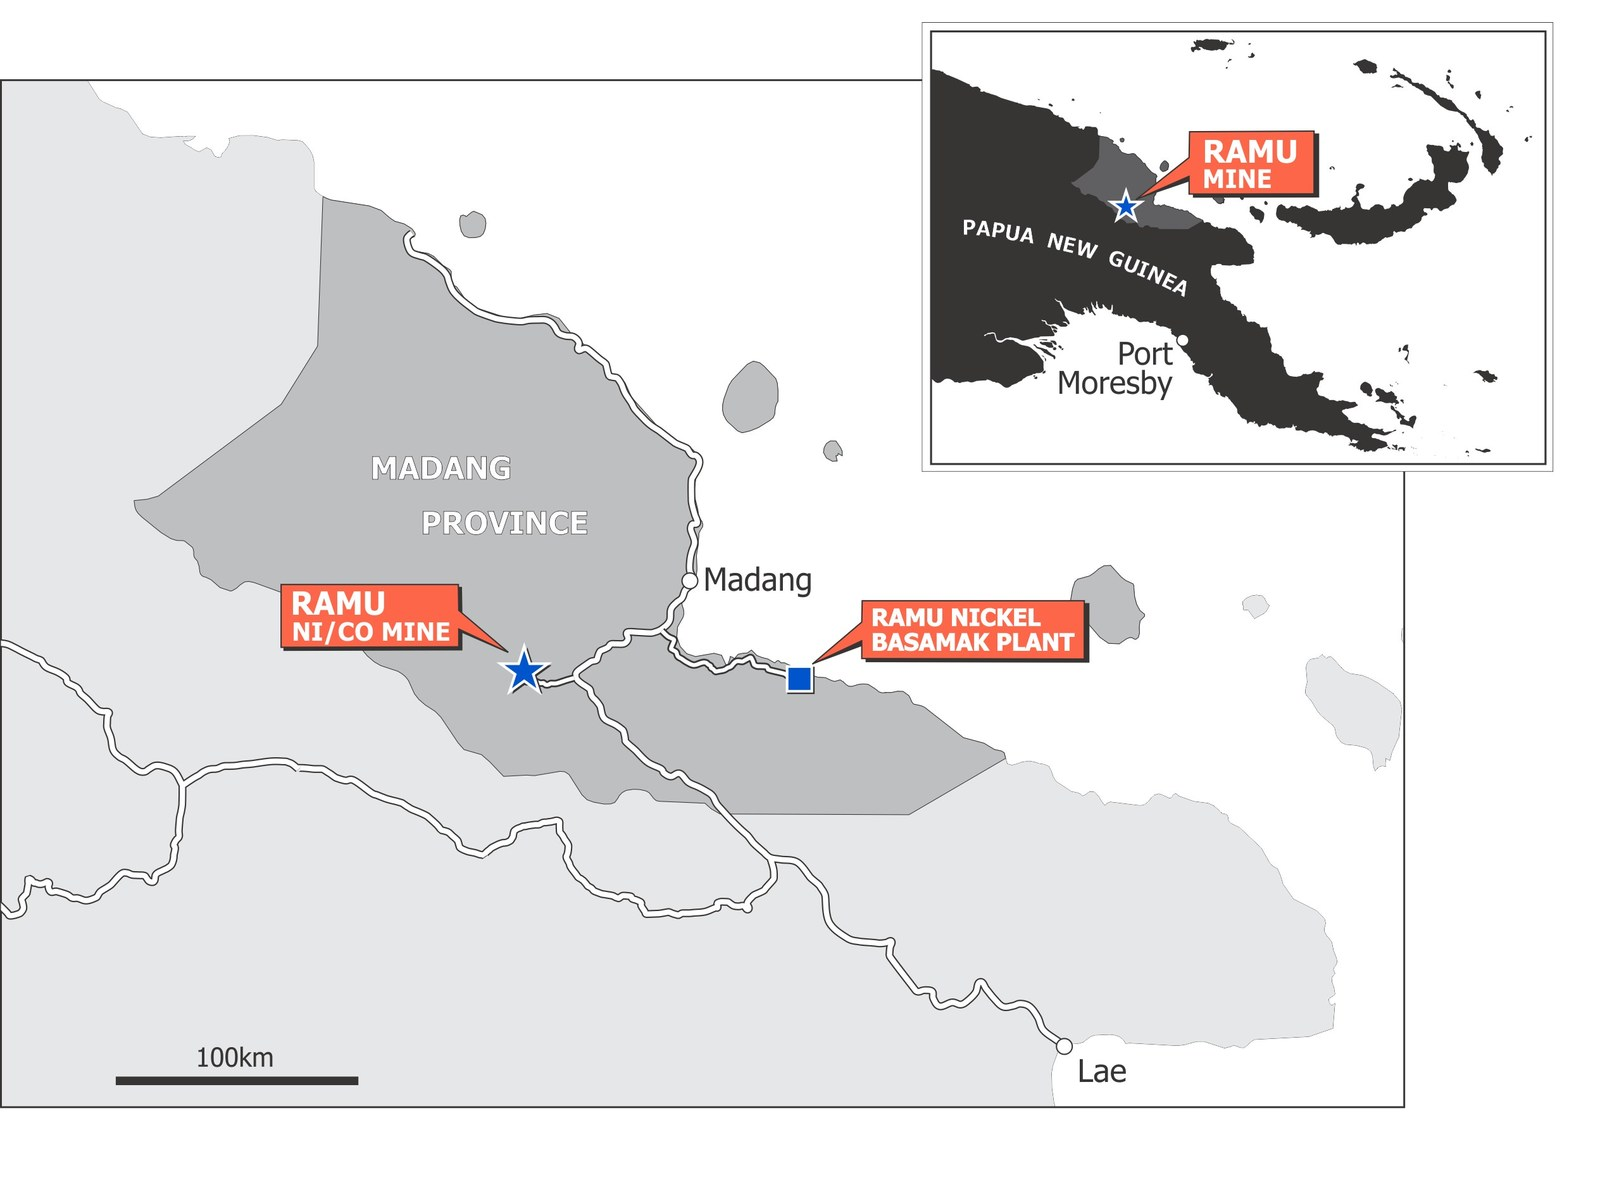 Cobalt 27 Announces Friendly Acquisition of Highlands Pacific to Create a Leading High-Growth, Diversified Battery-Metals Streaming Company.  The transaction is expected to add increased attributable nickel and cobalt production from the long-life, world-class Ramu Mine located in Papua New Guinea.